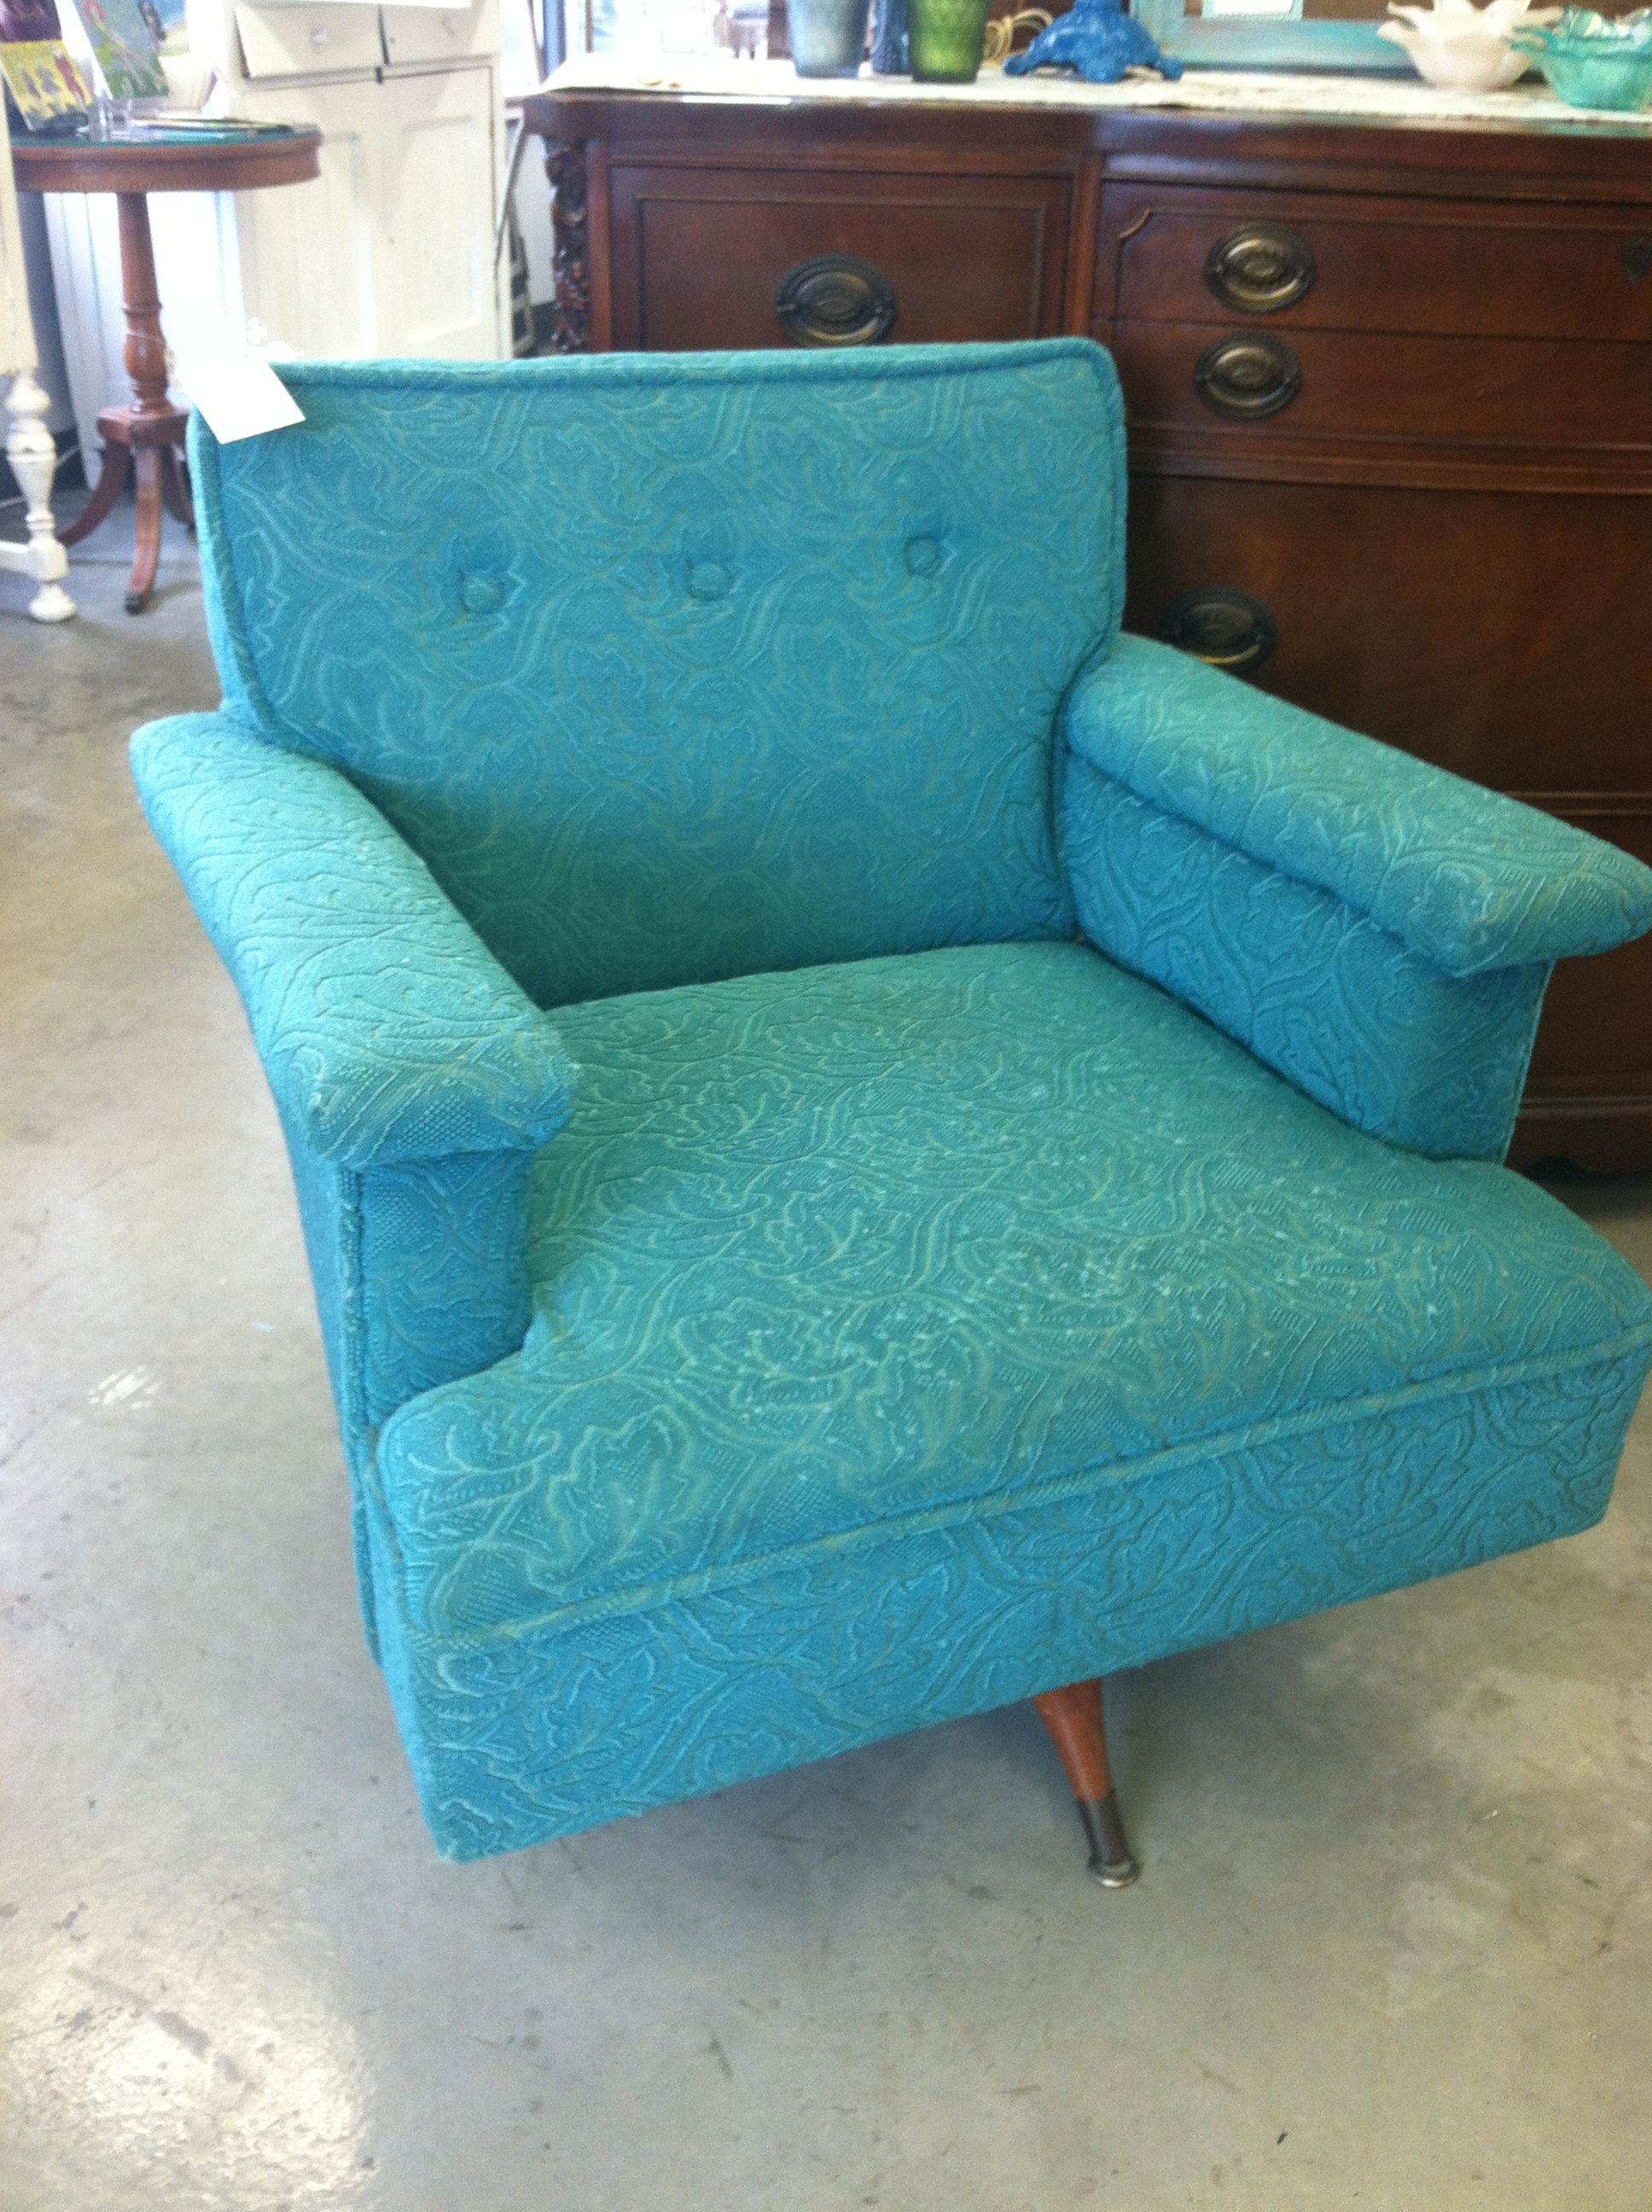 Teal Rocking Chair Mid Century Teal Swivel Rocker Sold Vintage Finds At